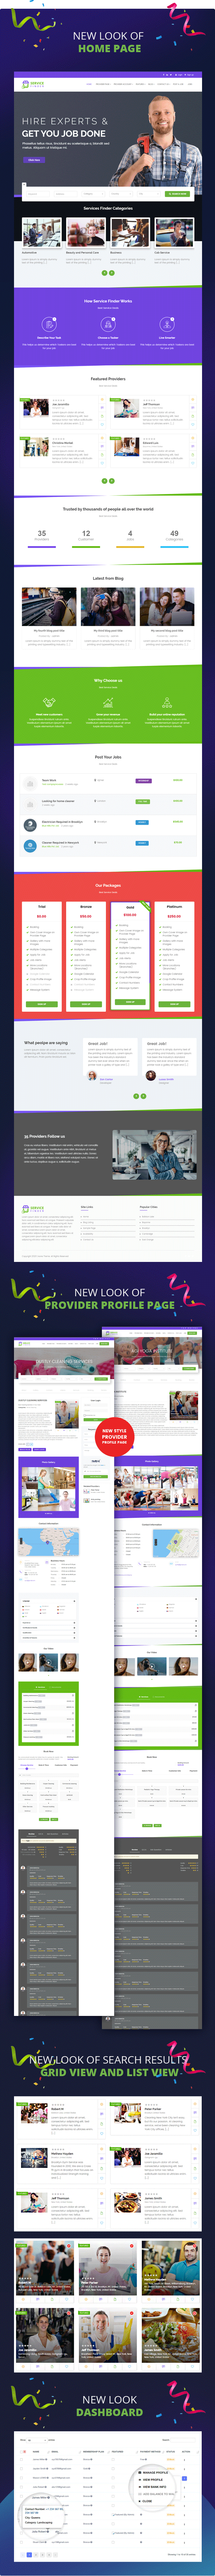 service finder preview 123 - Service Finder - Provider and Business Listing WordPress Theme